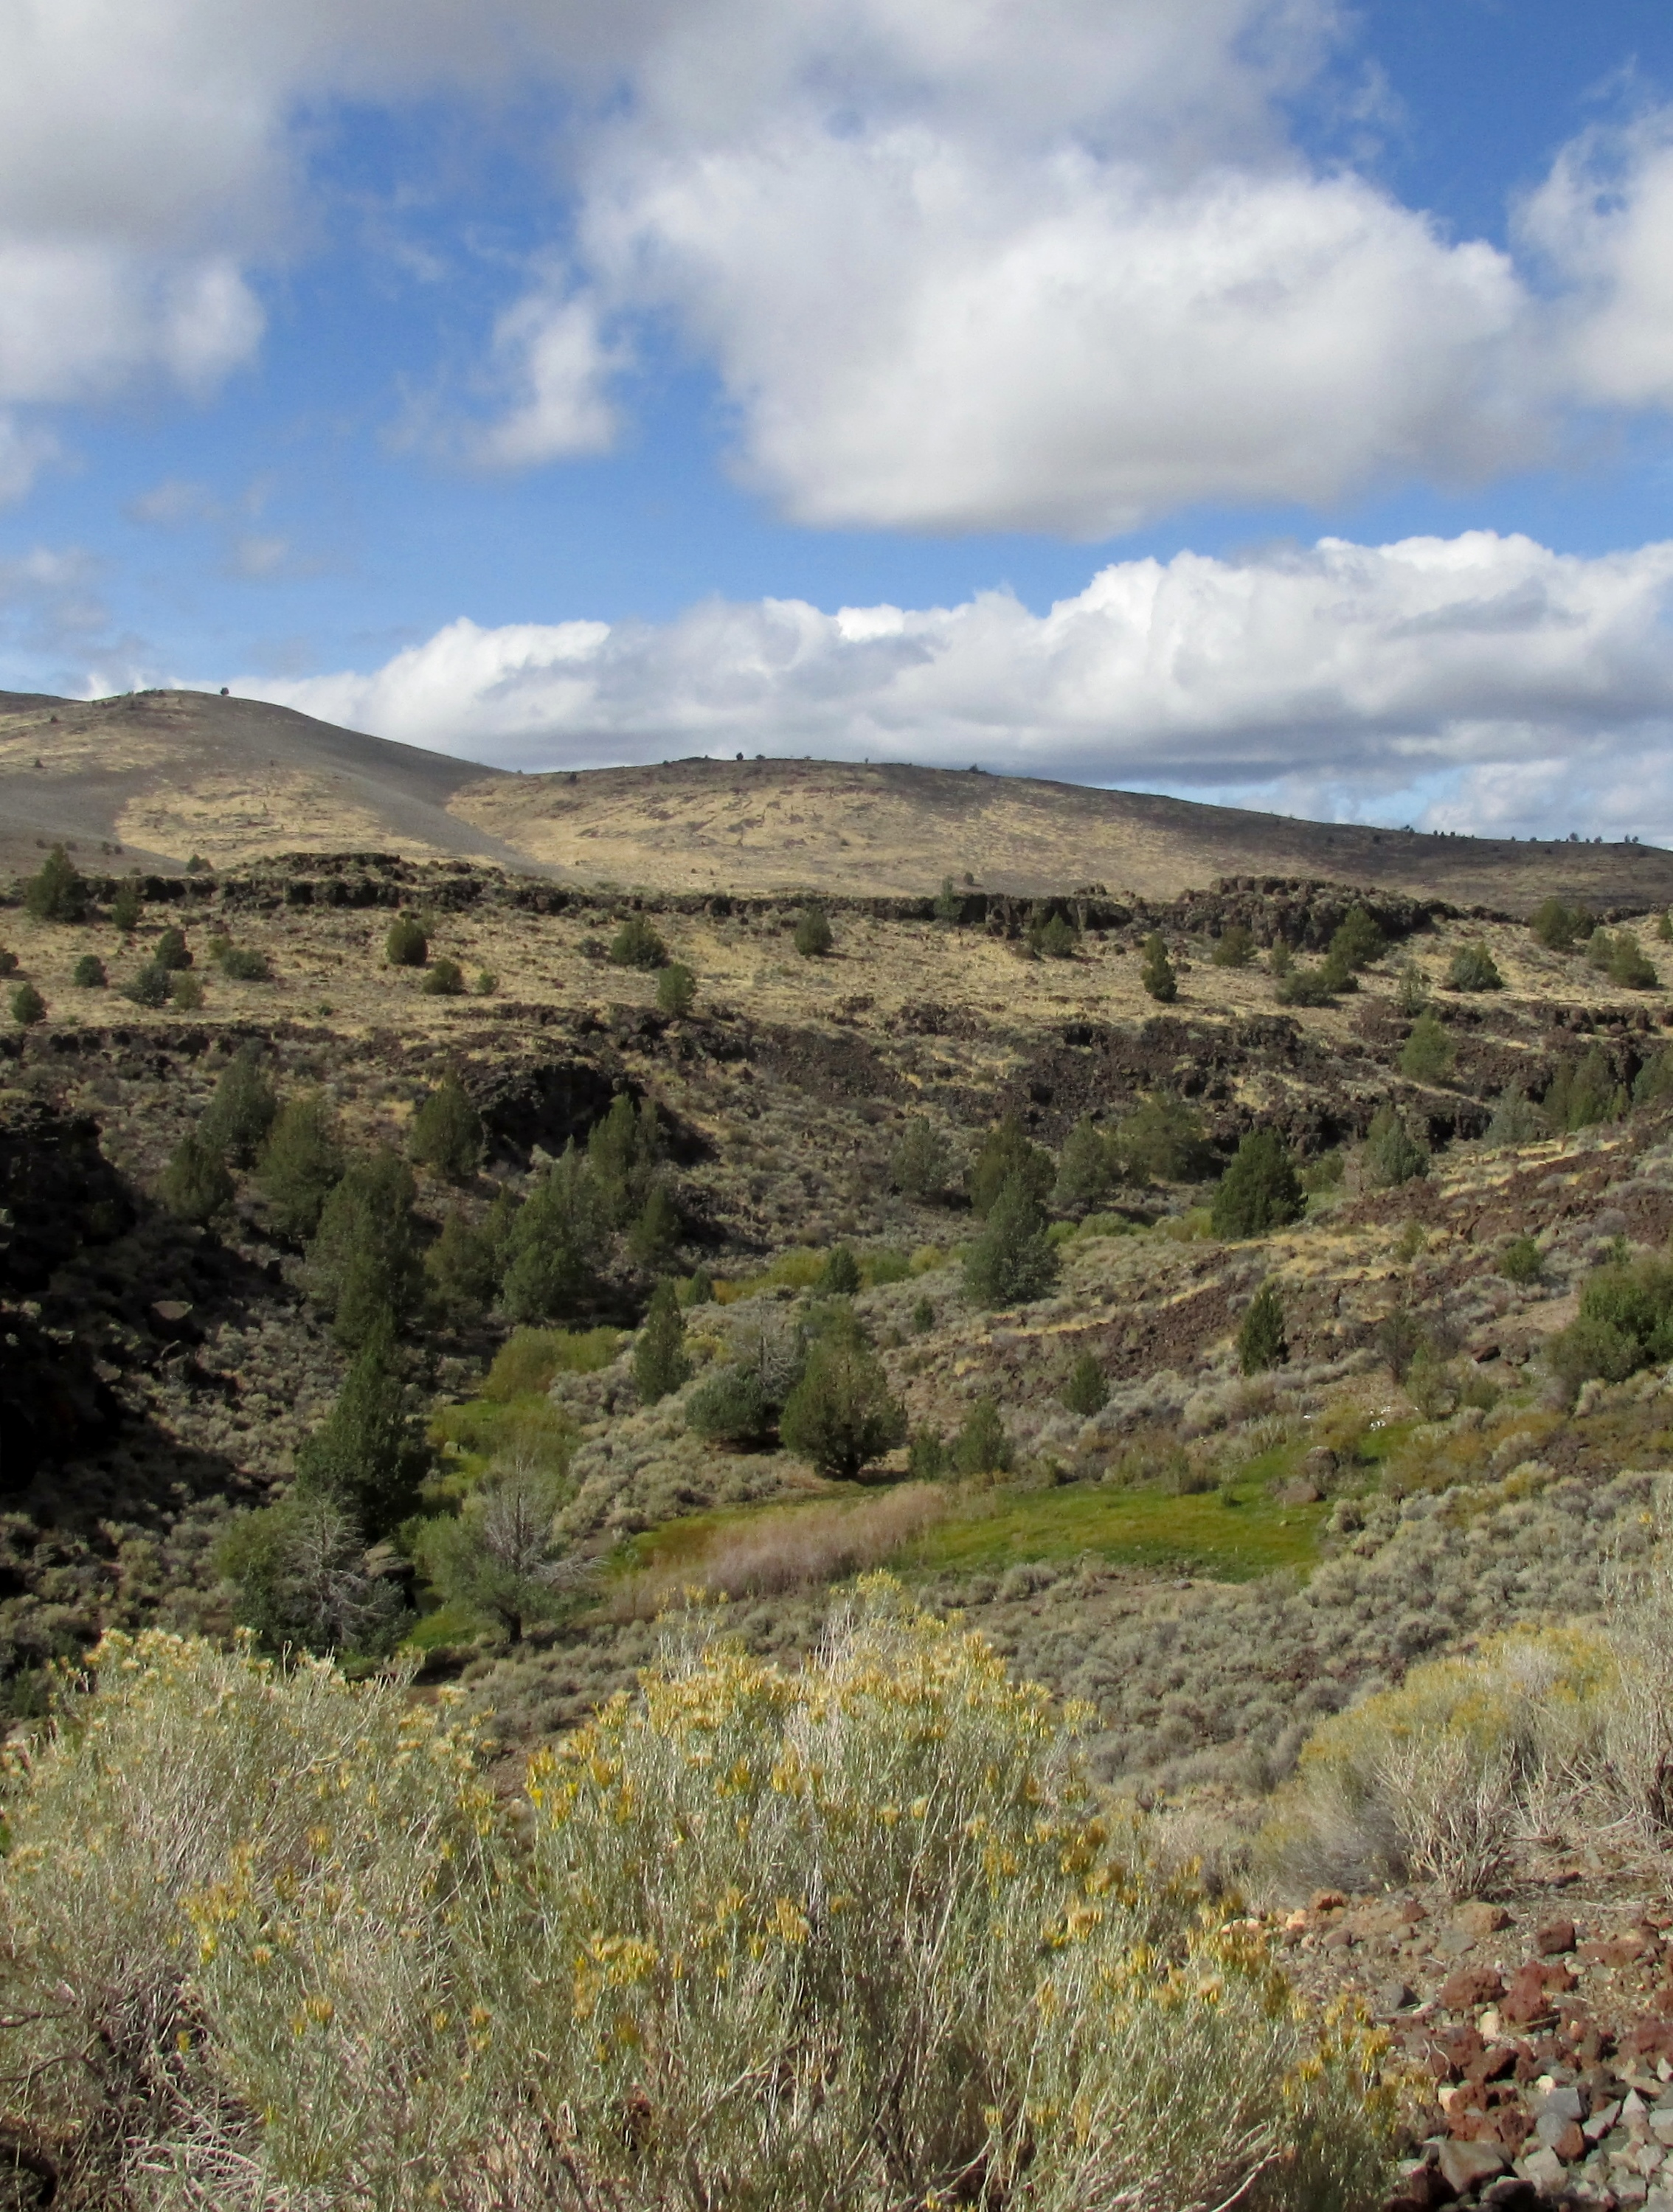 Modoc Line Rail Trail - Our partner in conservation, Rails-to-Trails Conservancy has put together a wonderful link full of reviews and information. Click the button to open.